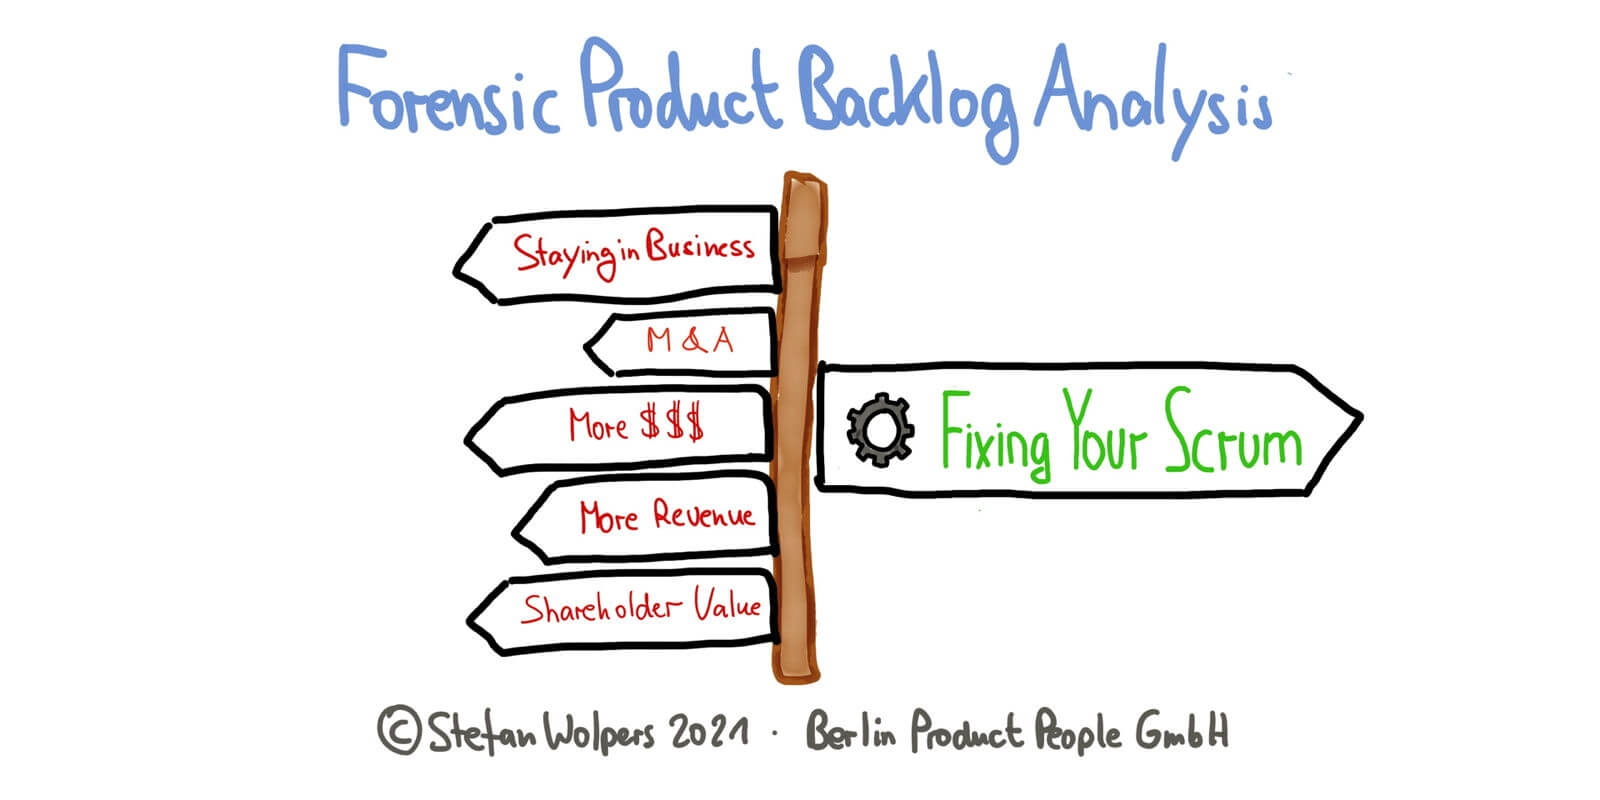 Fixing Your Scrum: A Forensic Product Backlog Analysis (Part 1)